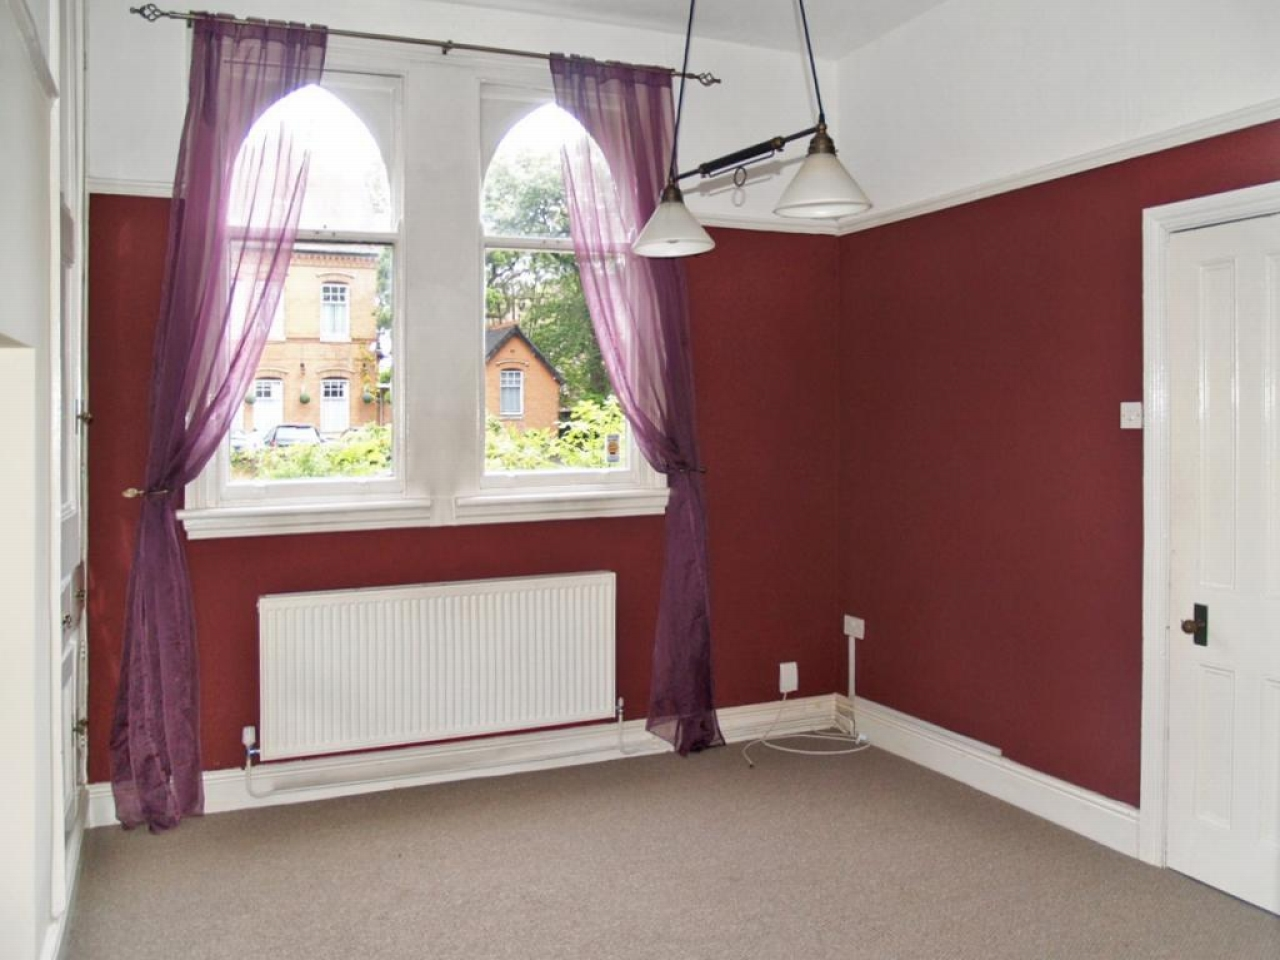 5 bedroom detached house SSTC in Solihull - photograph 8.